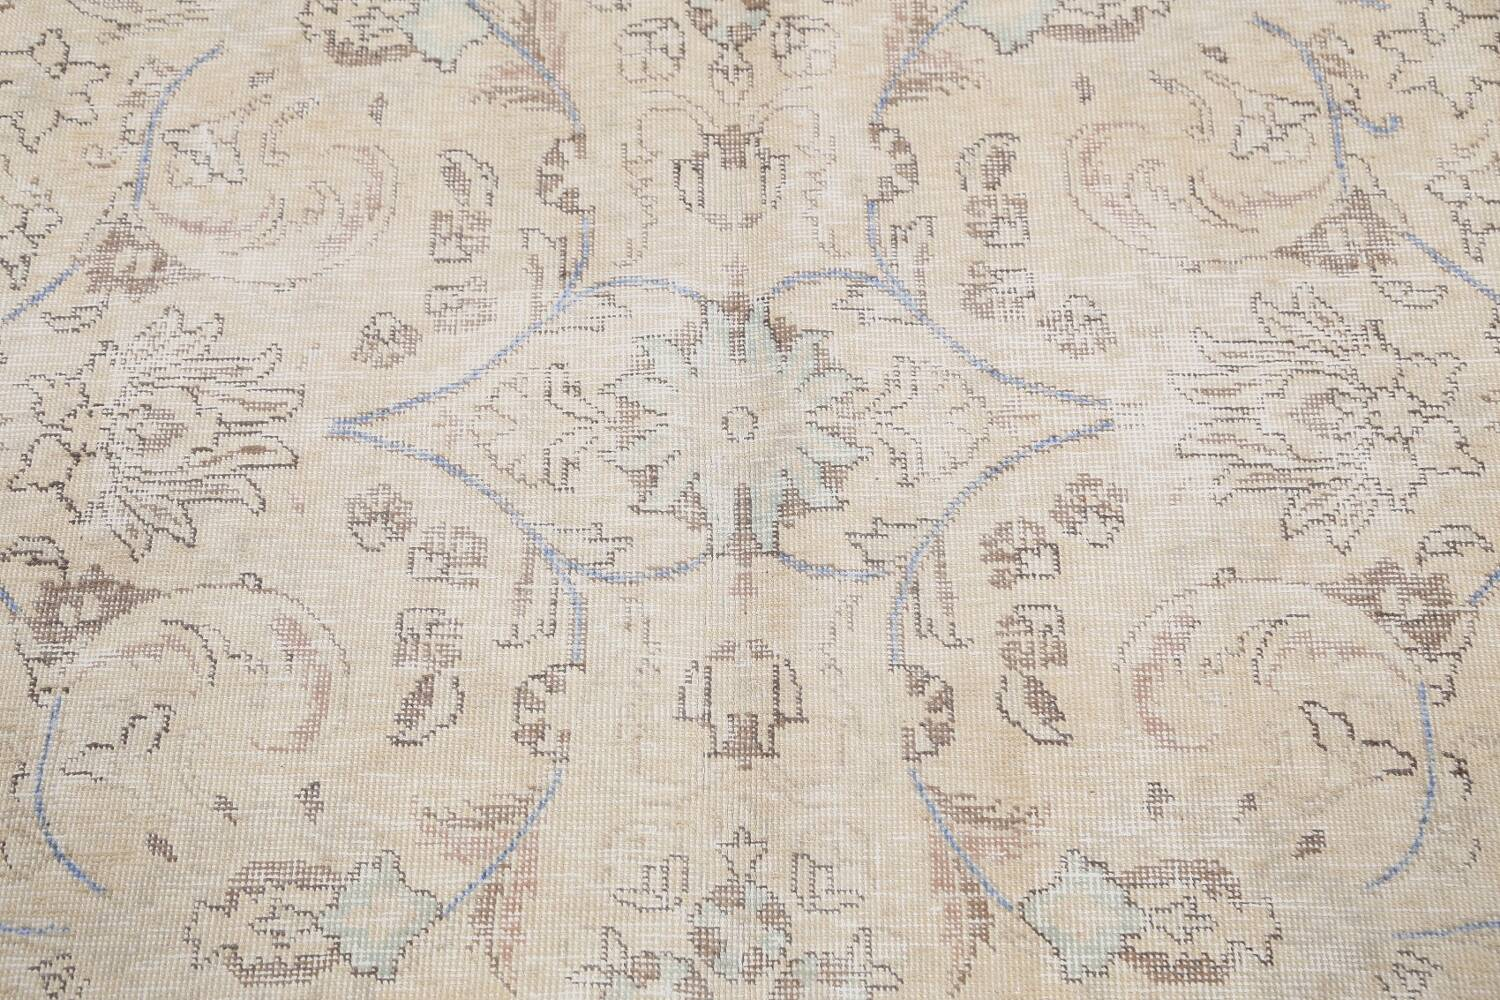 Antique Distressed Floral Tabriz Persian Area Rug 9x11 image 11